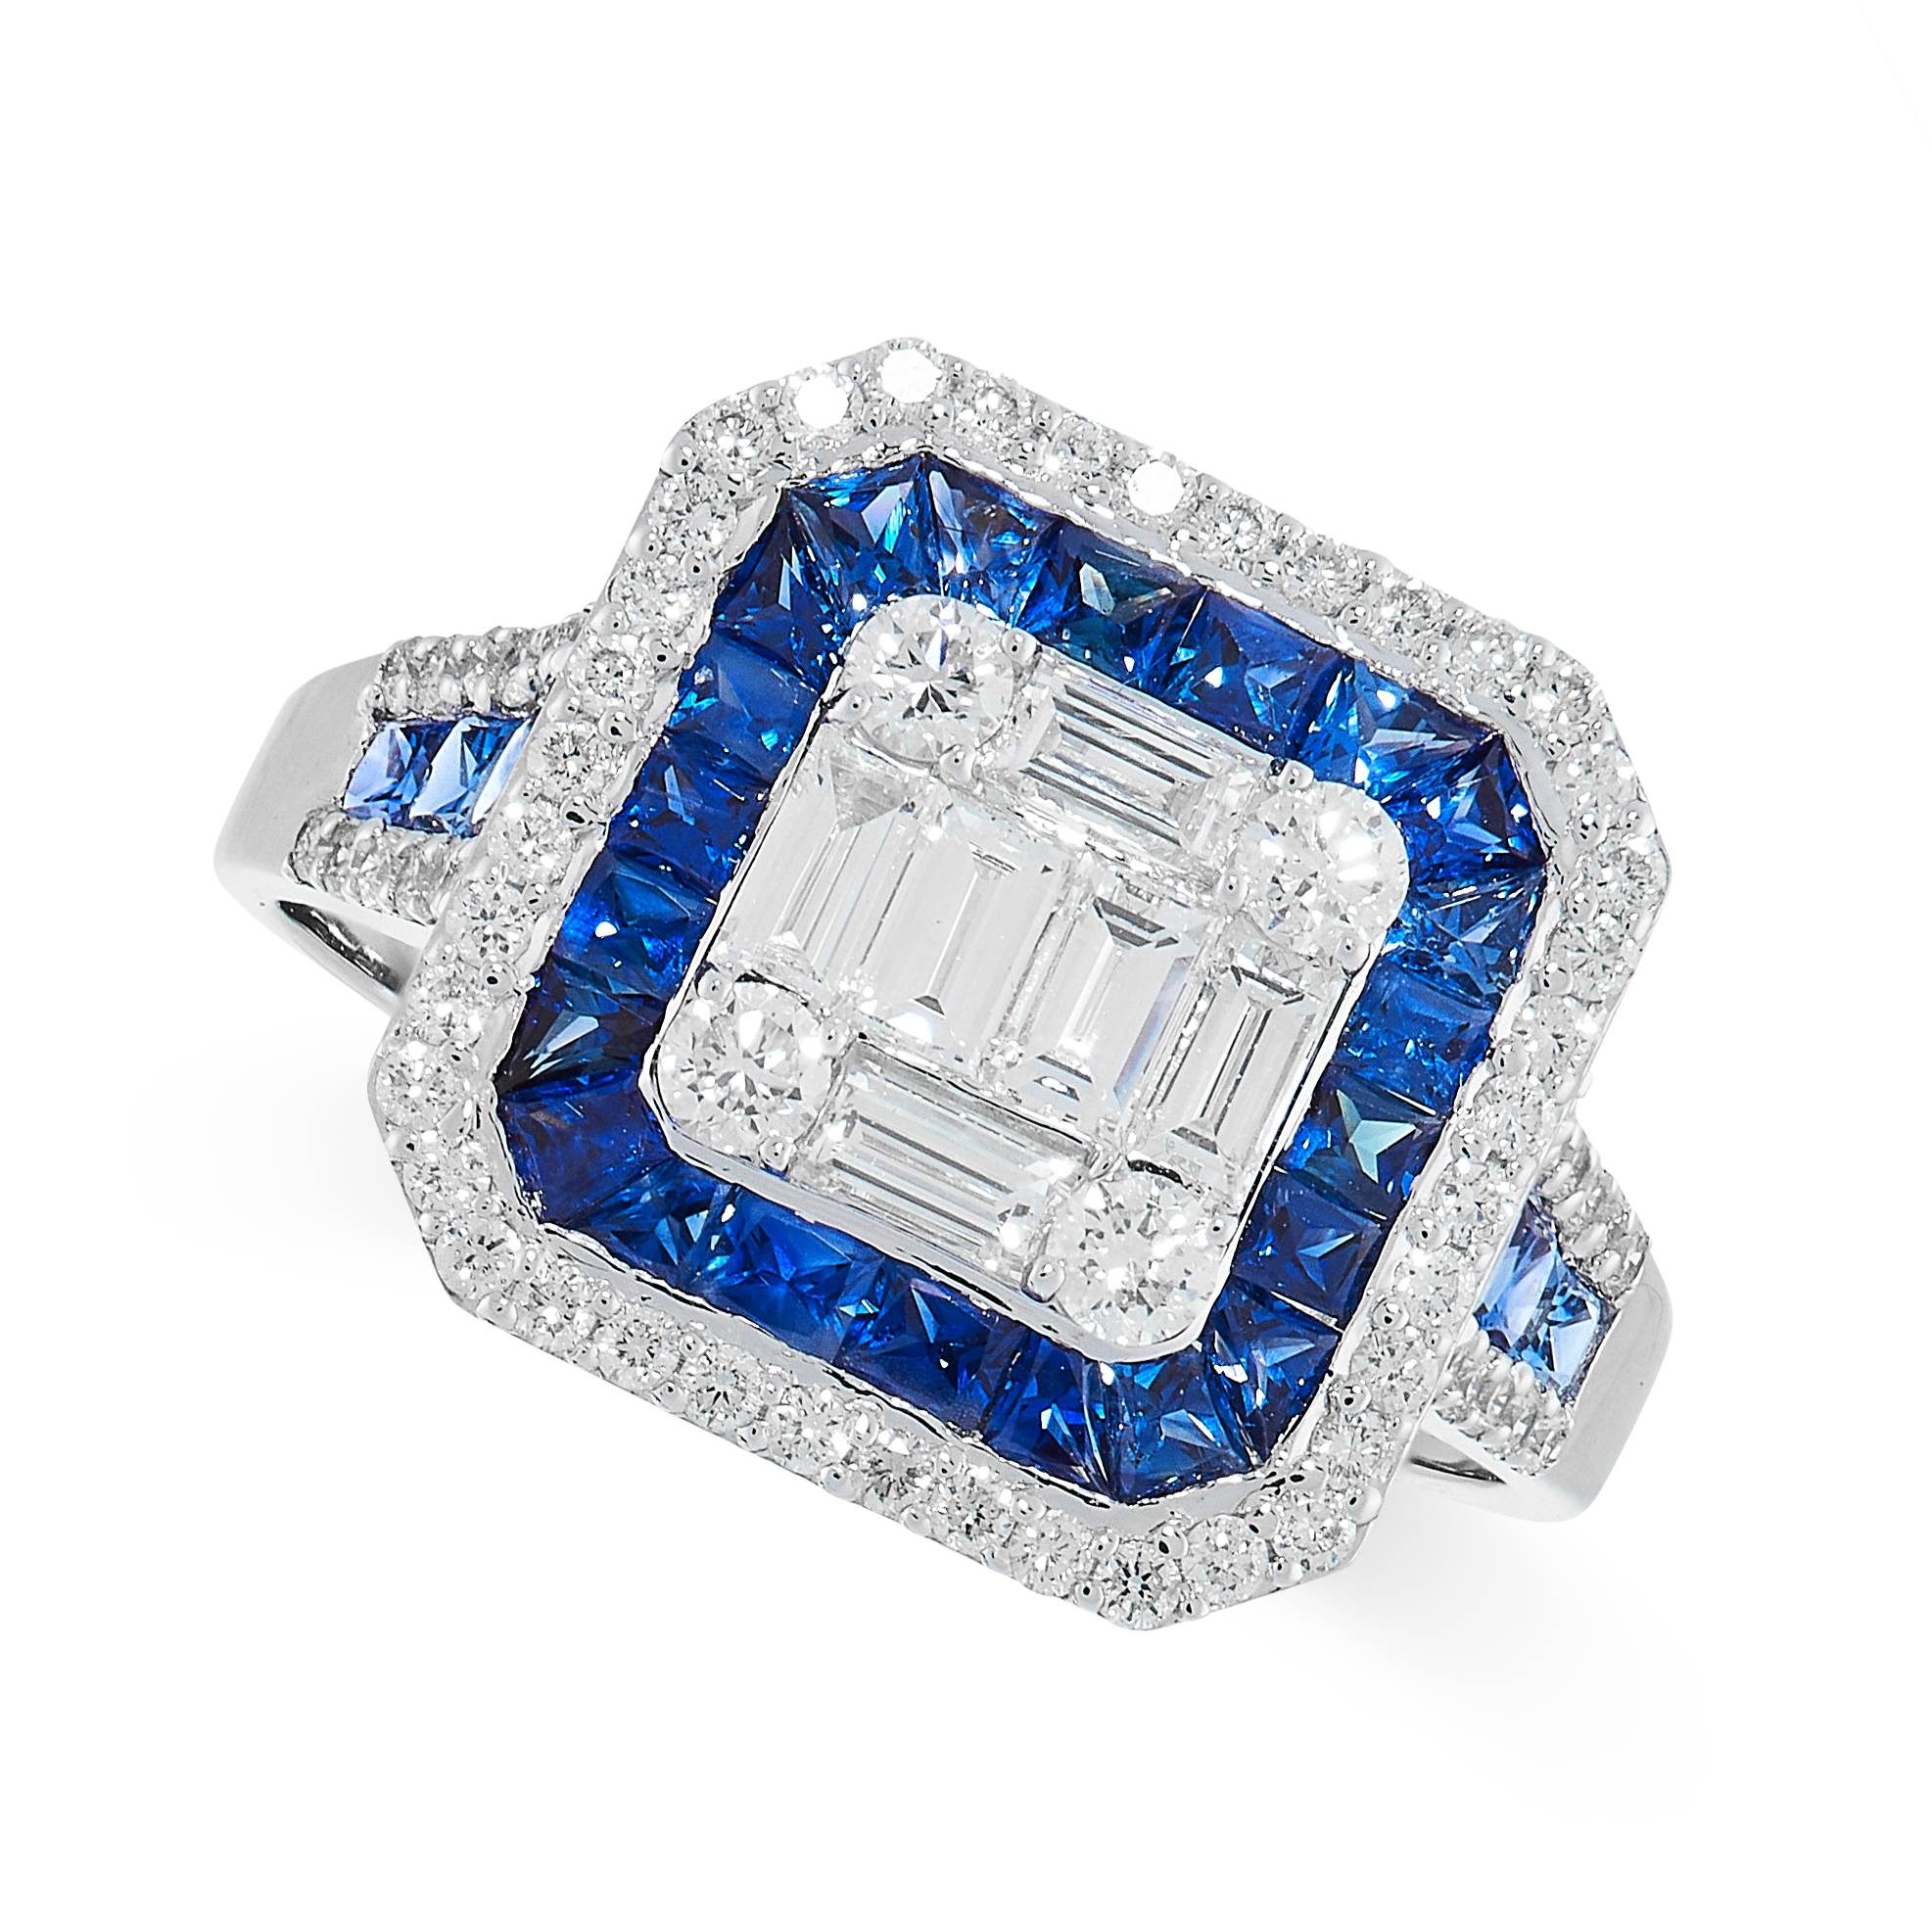 SAPPHIRE AND DIAMOND RING the central cluster composed of baguette and brilliant-cut diamonds, - Image 2 of 2